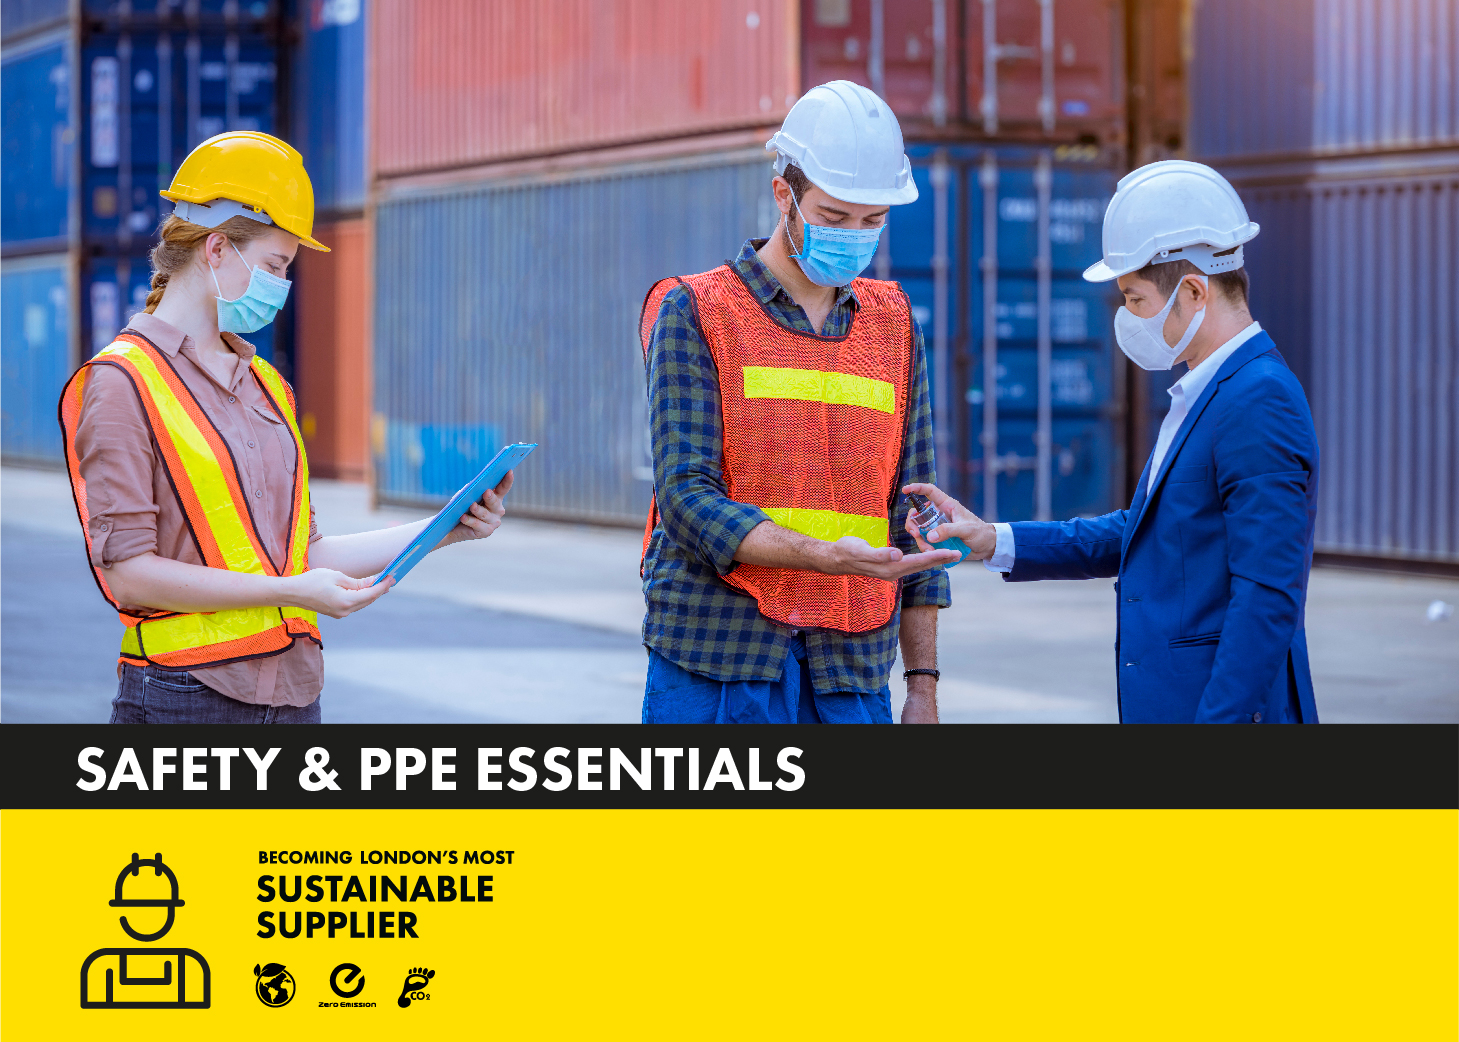 Safety and PPE essentials